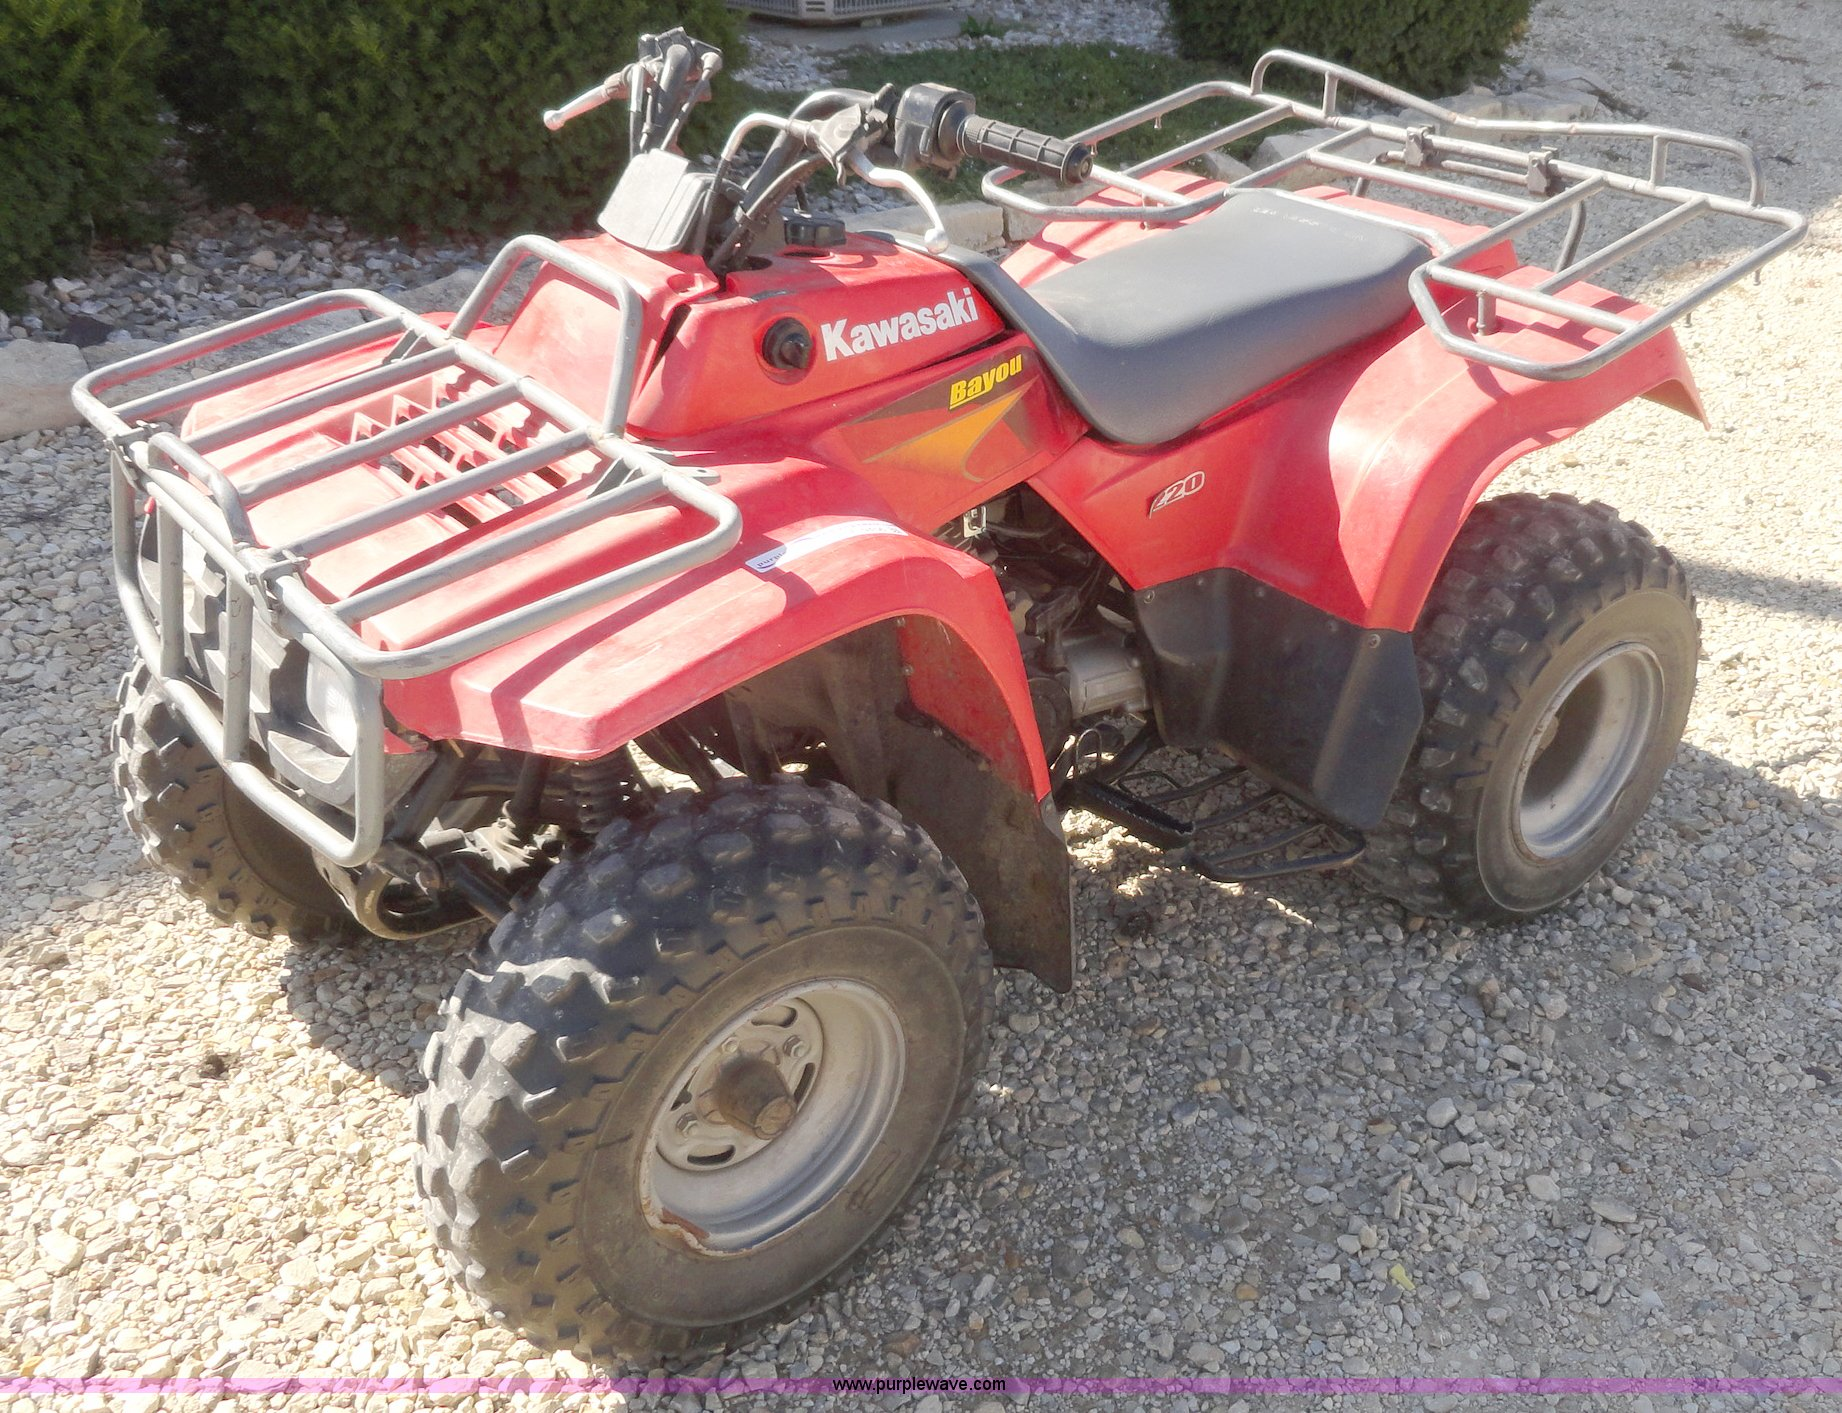 2000 Kawasaki Bayou 220 ATV | Item F9456 | SOLD! November 2 ...